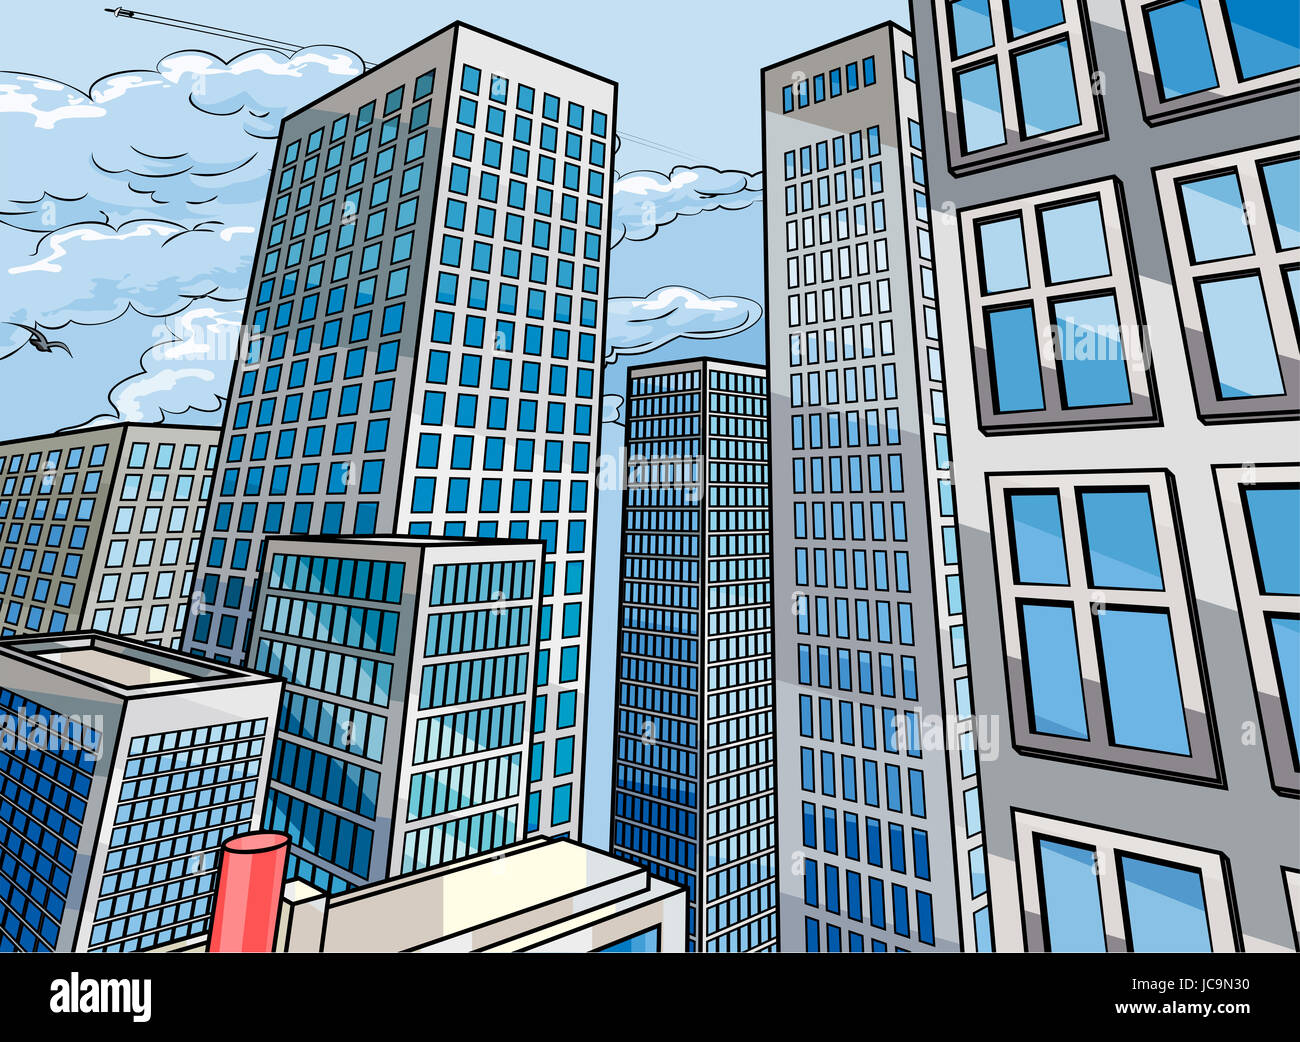 city background scene in a cartoon popart comicbook style blow clip art black clipart men's day images